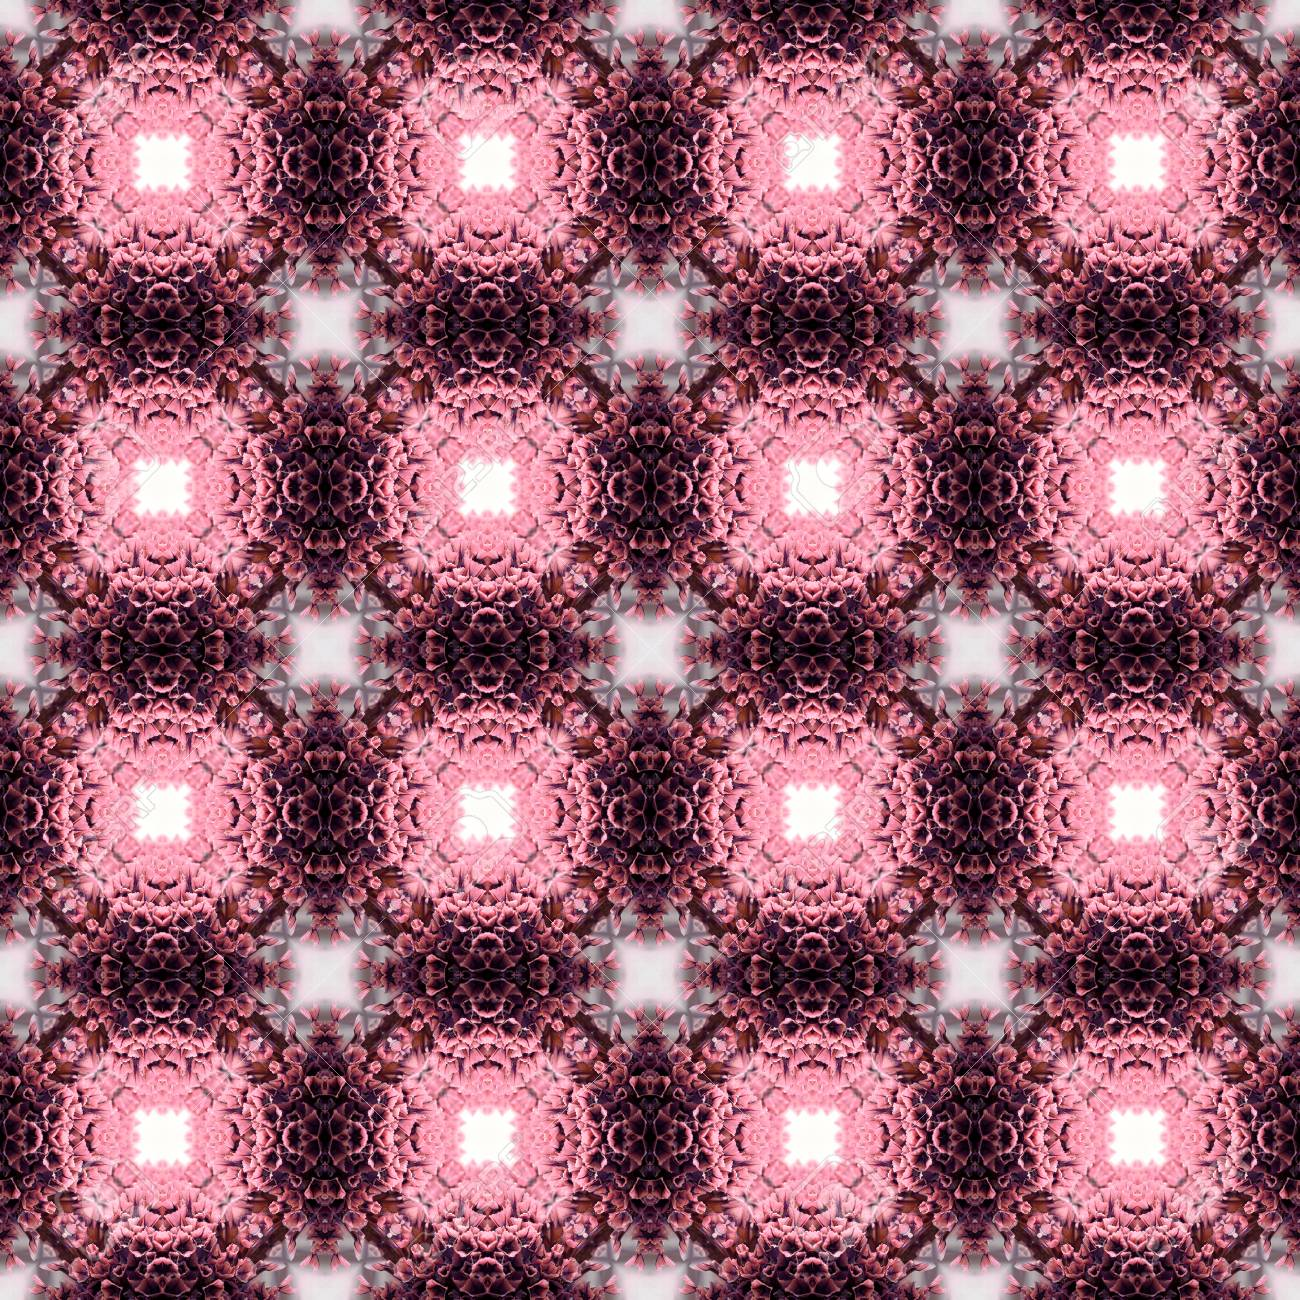 Abstract flowers seamless pattern background. Kaleidoscope from flowers. Hydraulic tile design. - 104074901